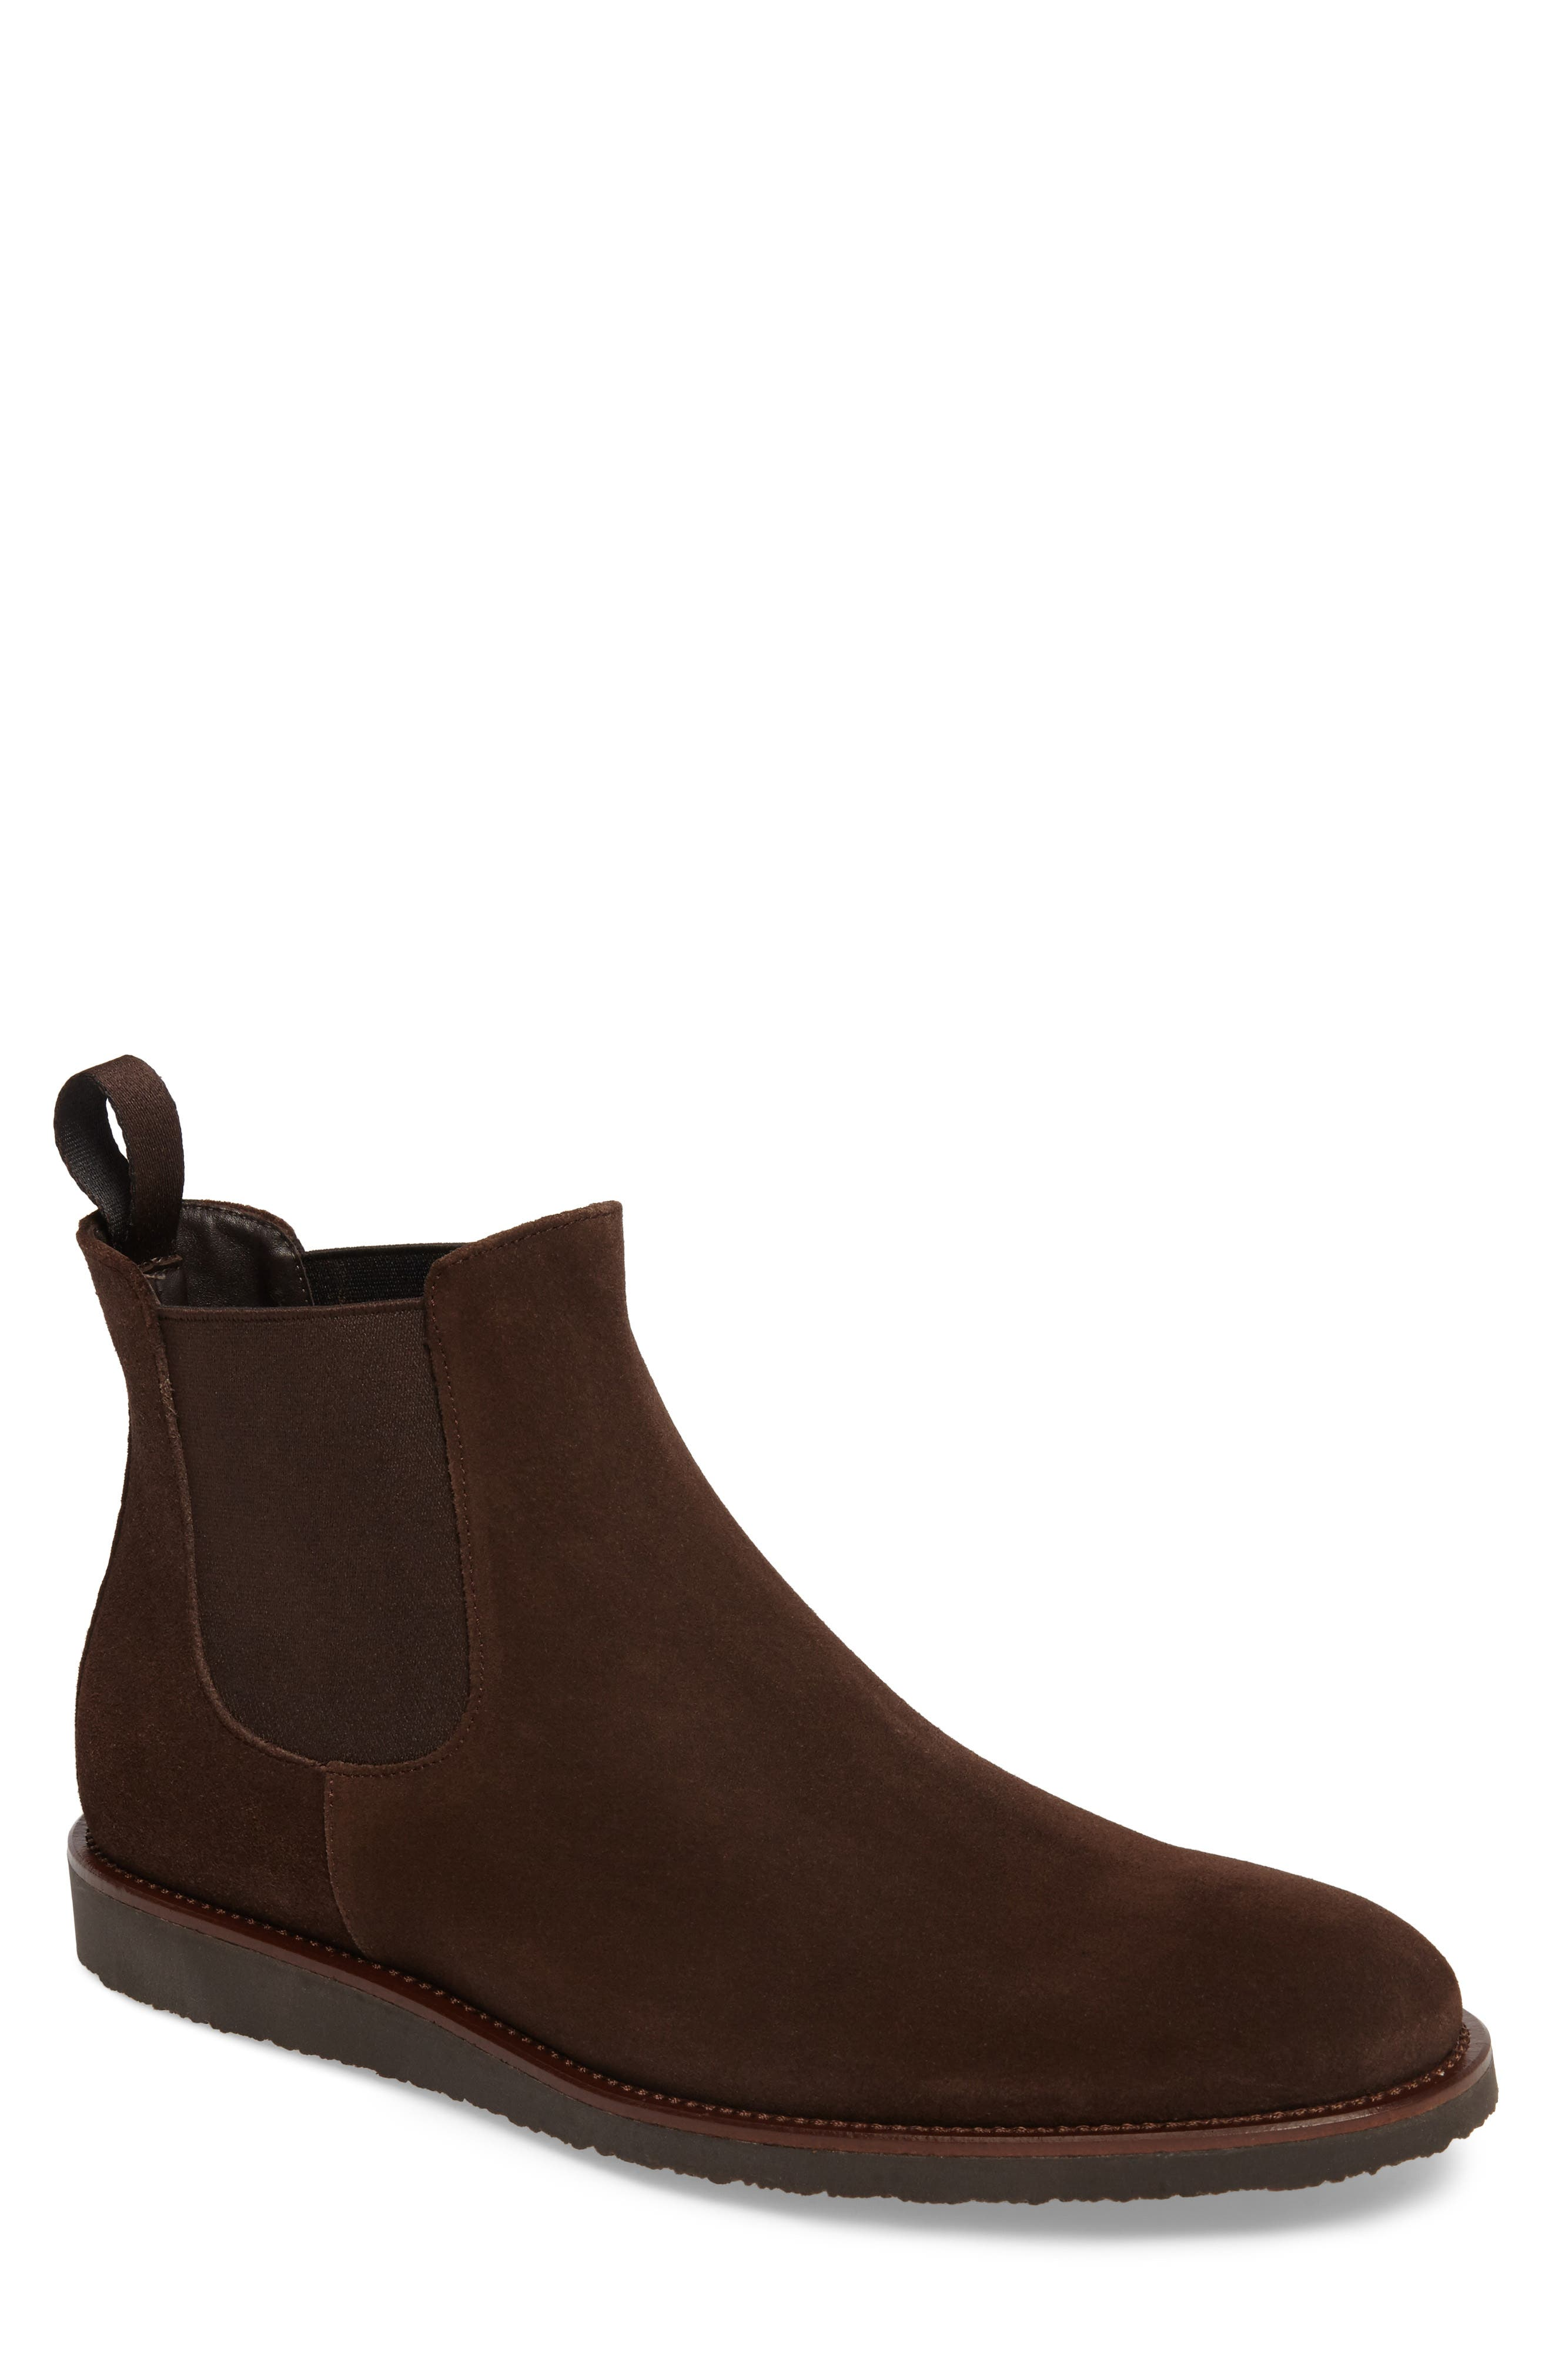 Corden Chelsea Boot,                             Main thumbnail 1, color,                             Otterproof Moro